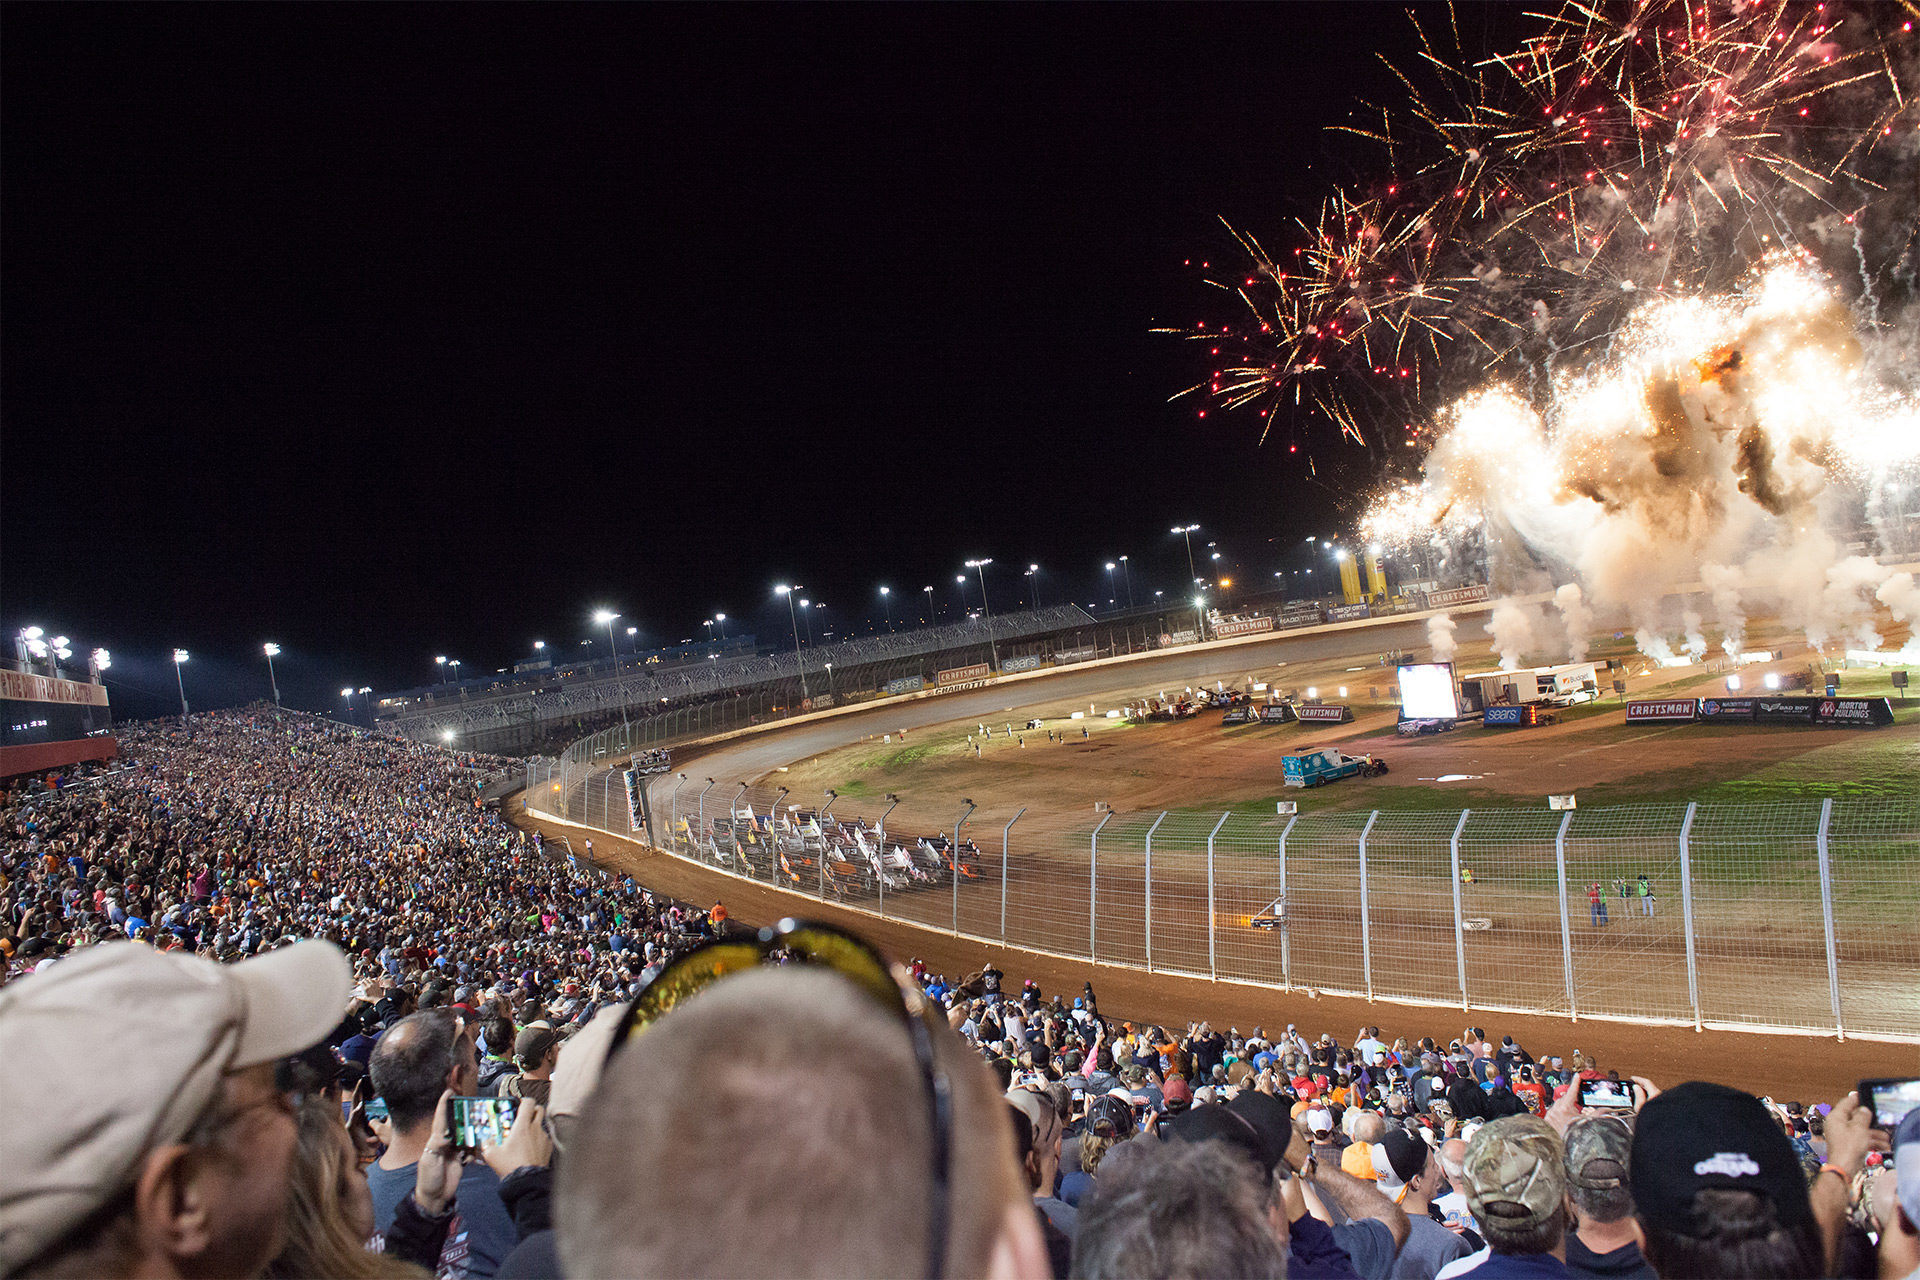 Fireworks light-up the 19 car field, in anticipation for the green, during the Feature race Saturday night, Day 2 of The Bad Boy Off Road World of Outlaws World Finals at The Dirt Track at Charlotte, in North Carolina 2016. ( Jeffrey Turford / TDP )